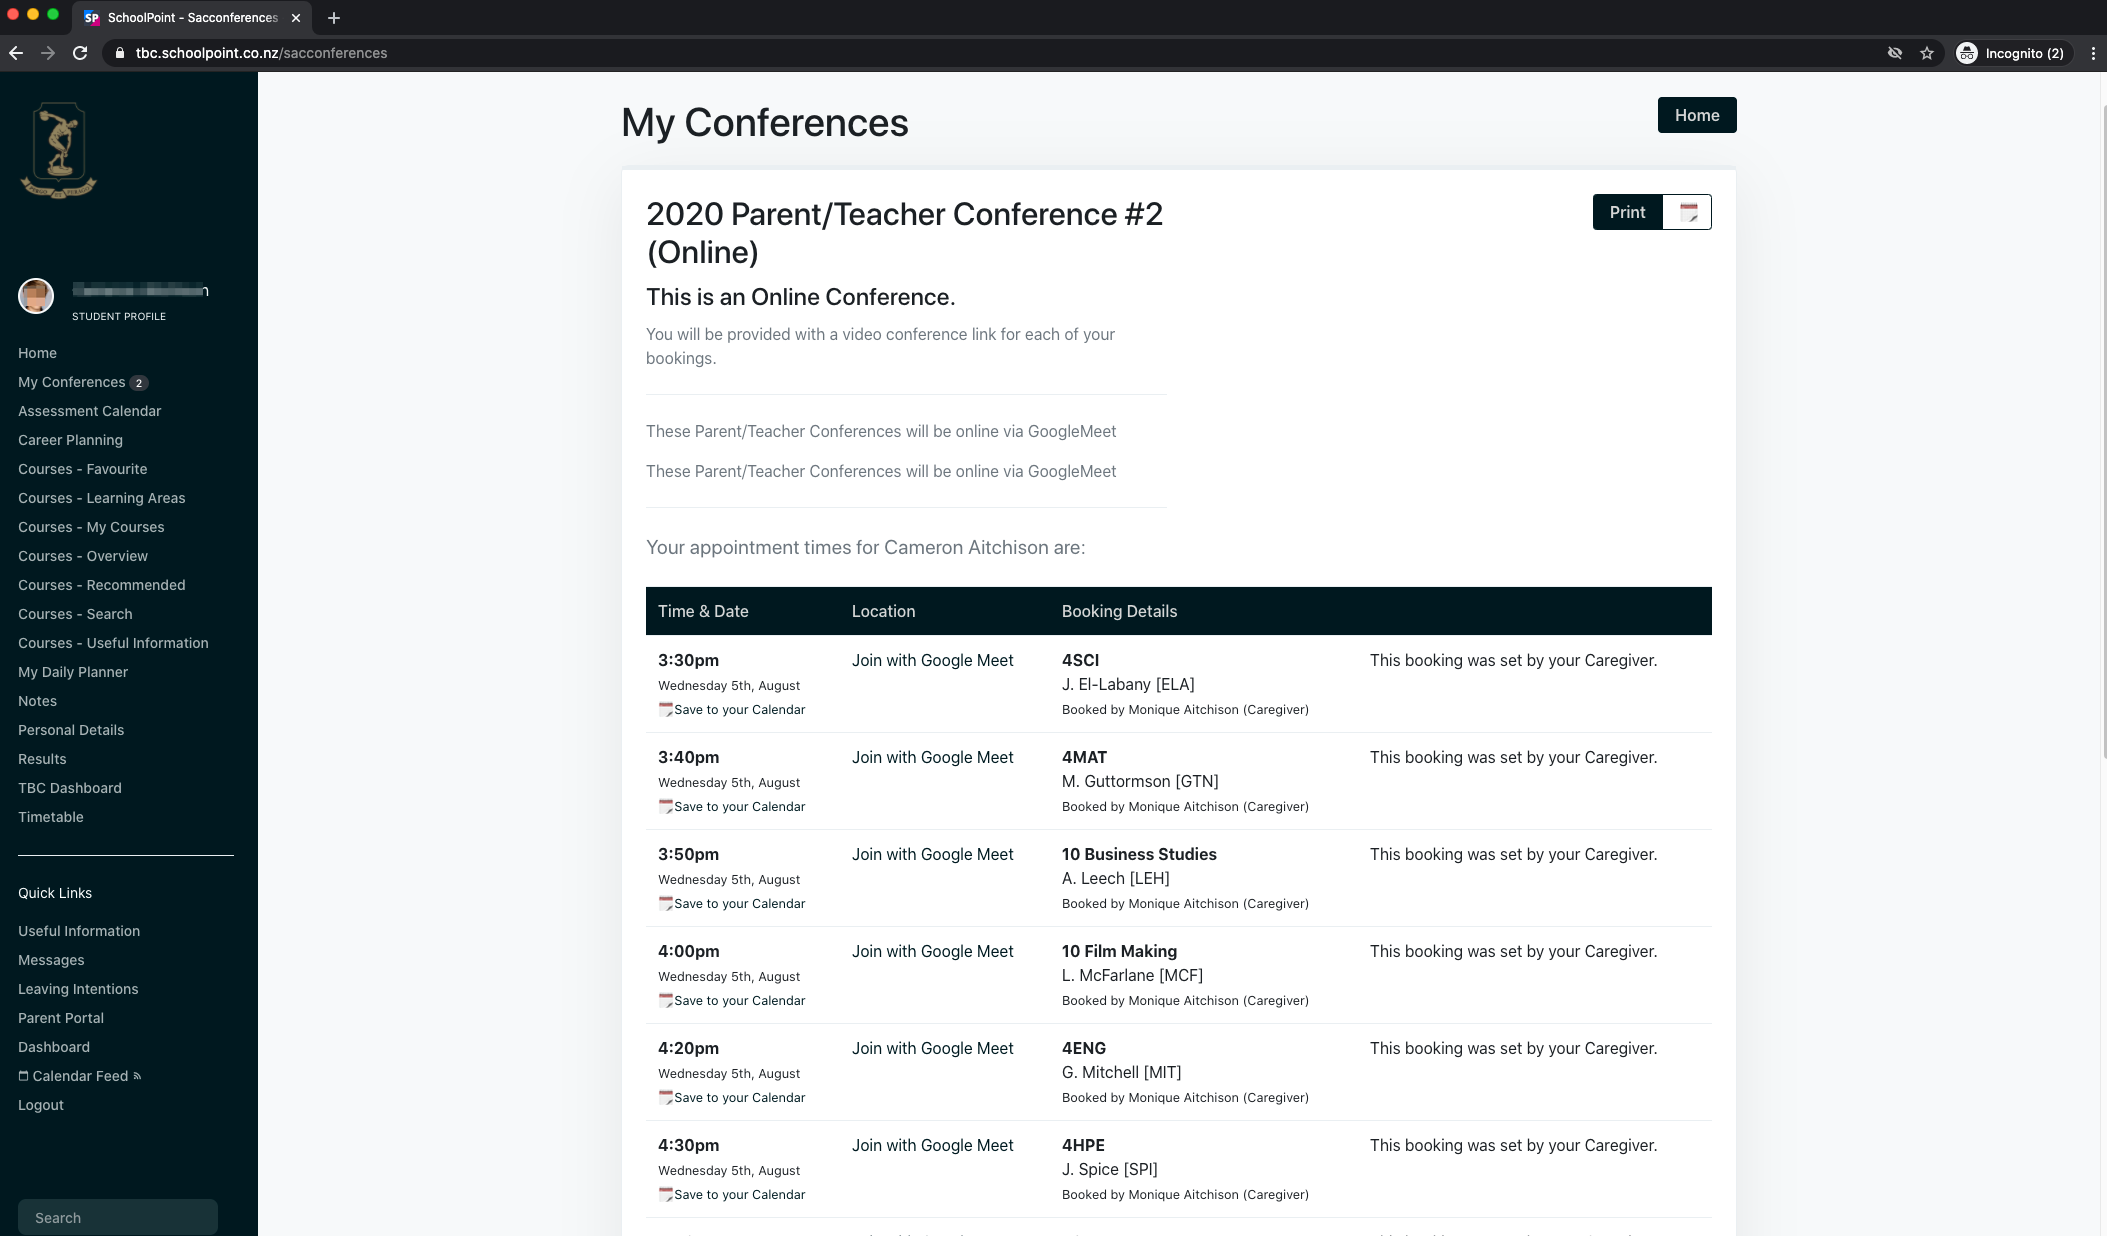 My Conference Screenshot 2